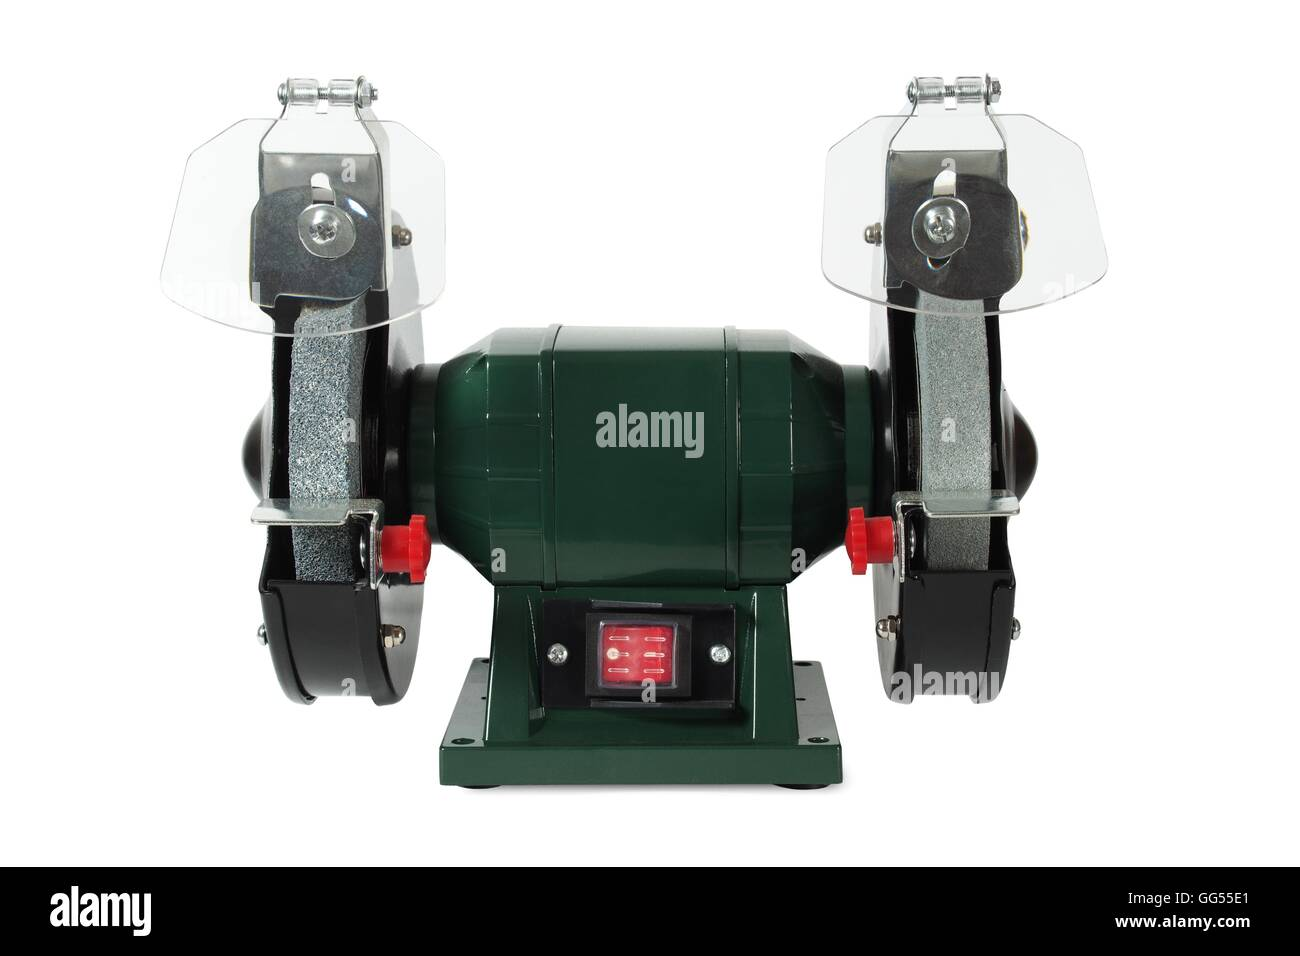 Bench Grinder Stock Photos S Alamy. Small Bench Grinder Stock. Wiring. Bench Grinder Wiring Diagram Small At Scoala.co